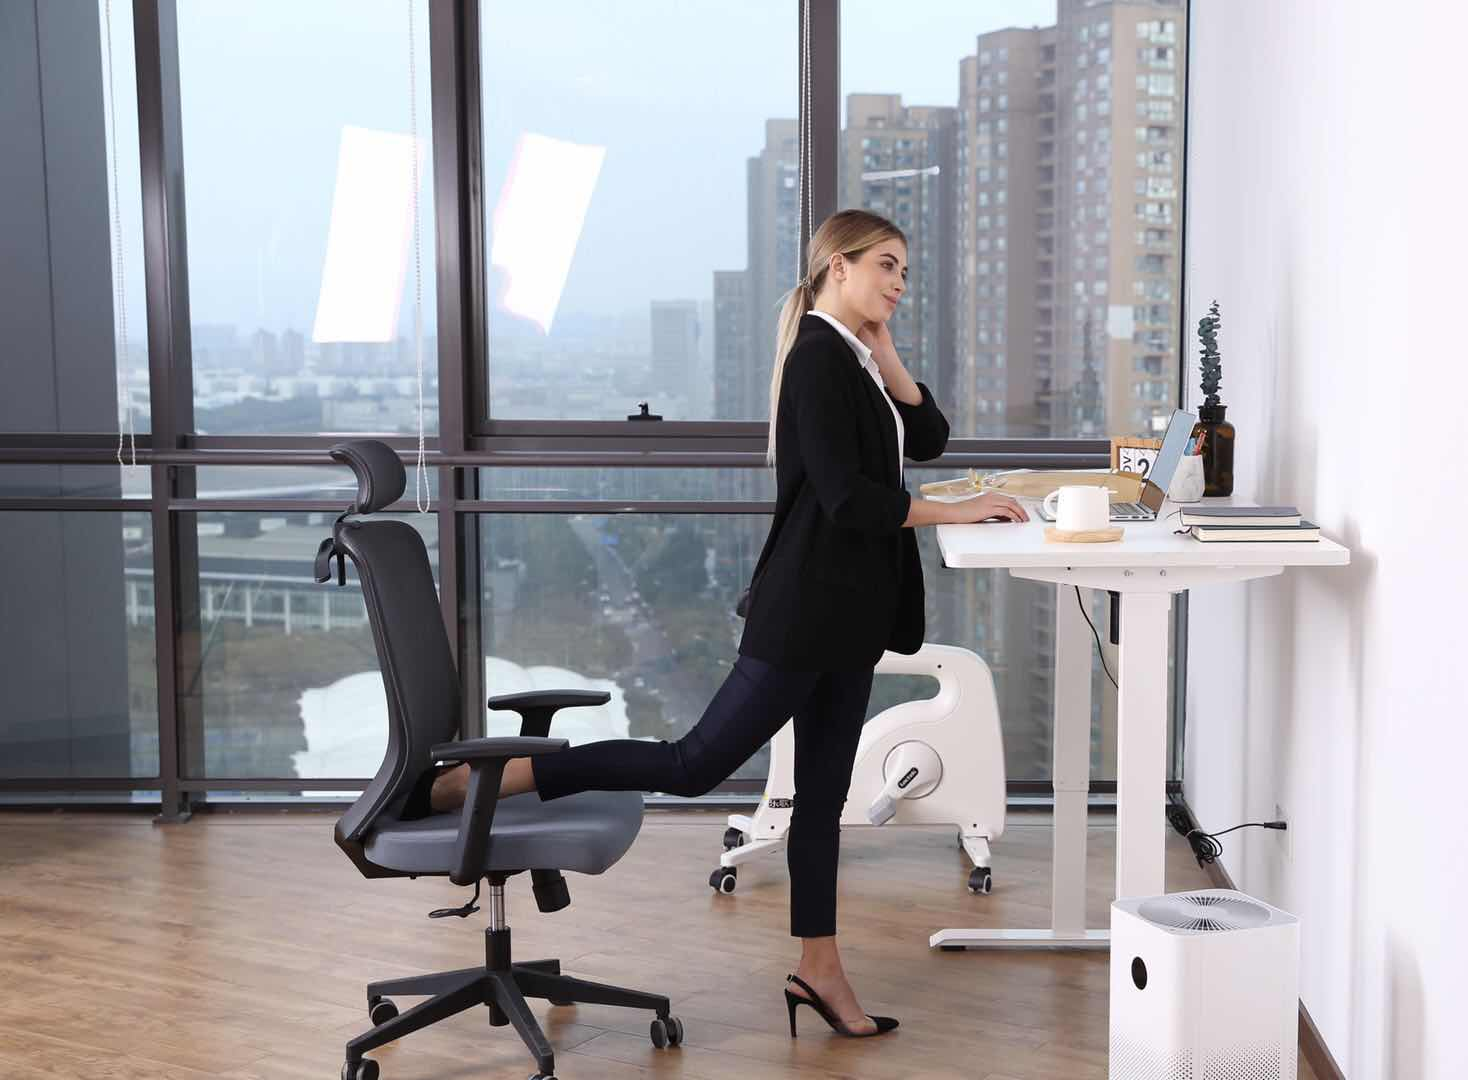 The Ergonomic Difference Between Working at a Standing Desk vs Sitting